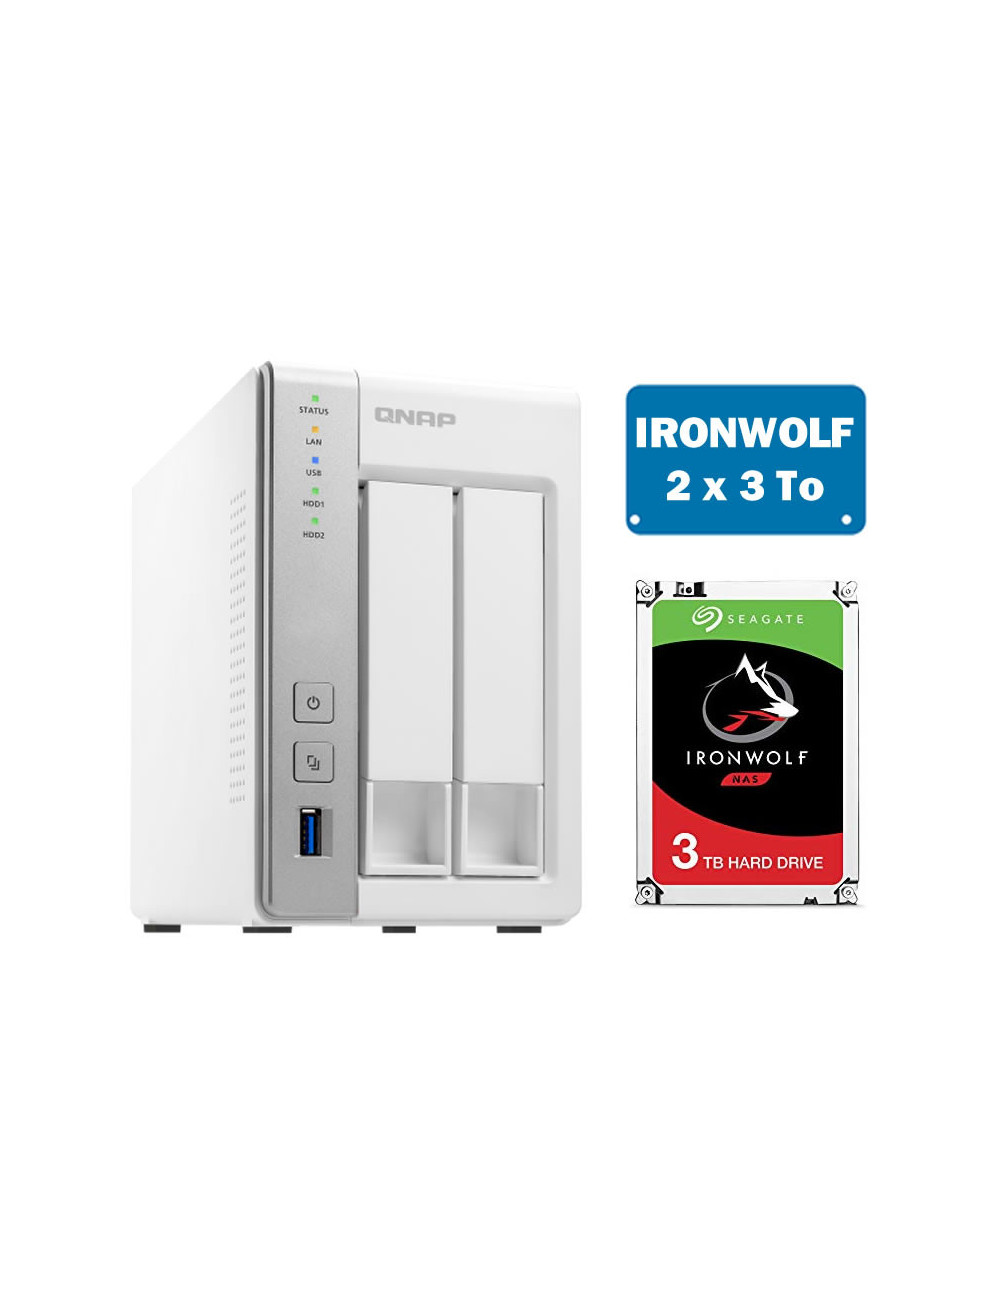 QNAP TS-231P Serveur NAS IRONWOLF 6 To